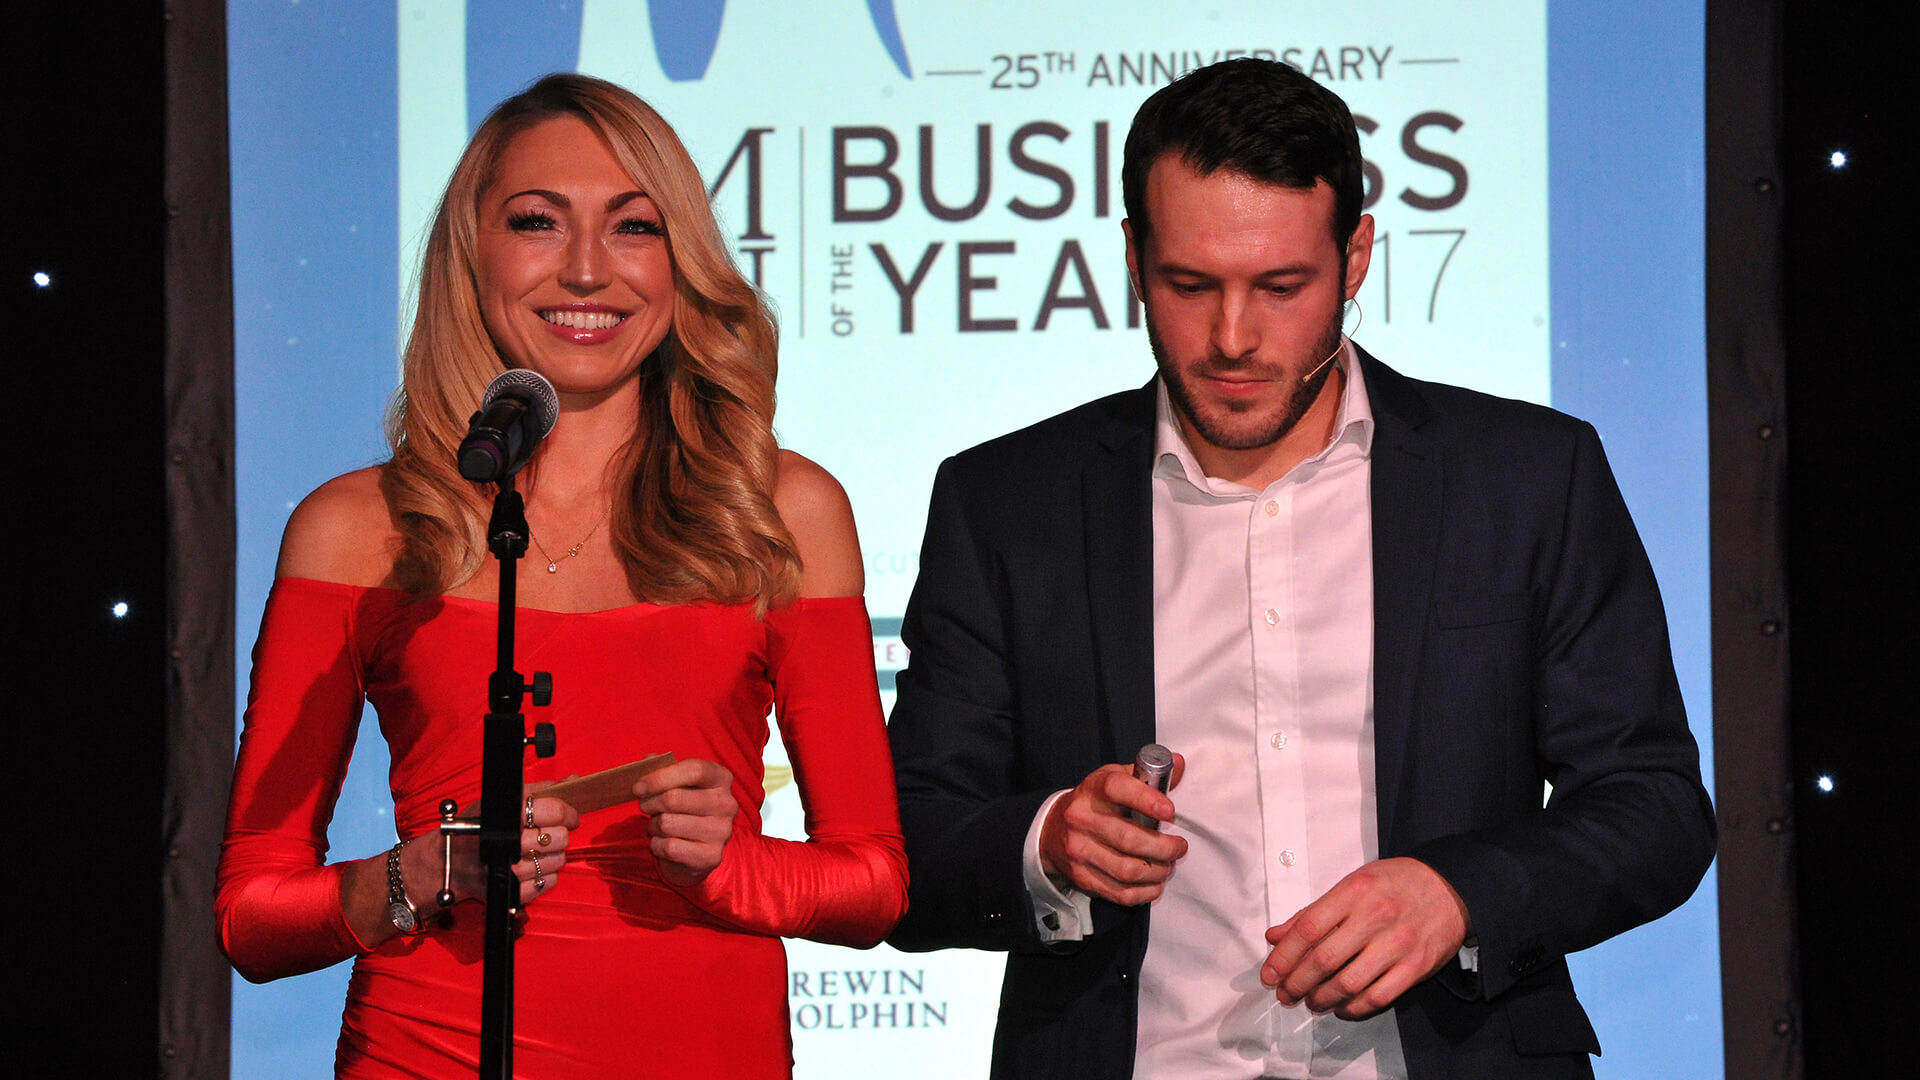 Aaron on stage at Manchester business awards providing corporate entertainment